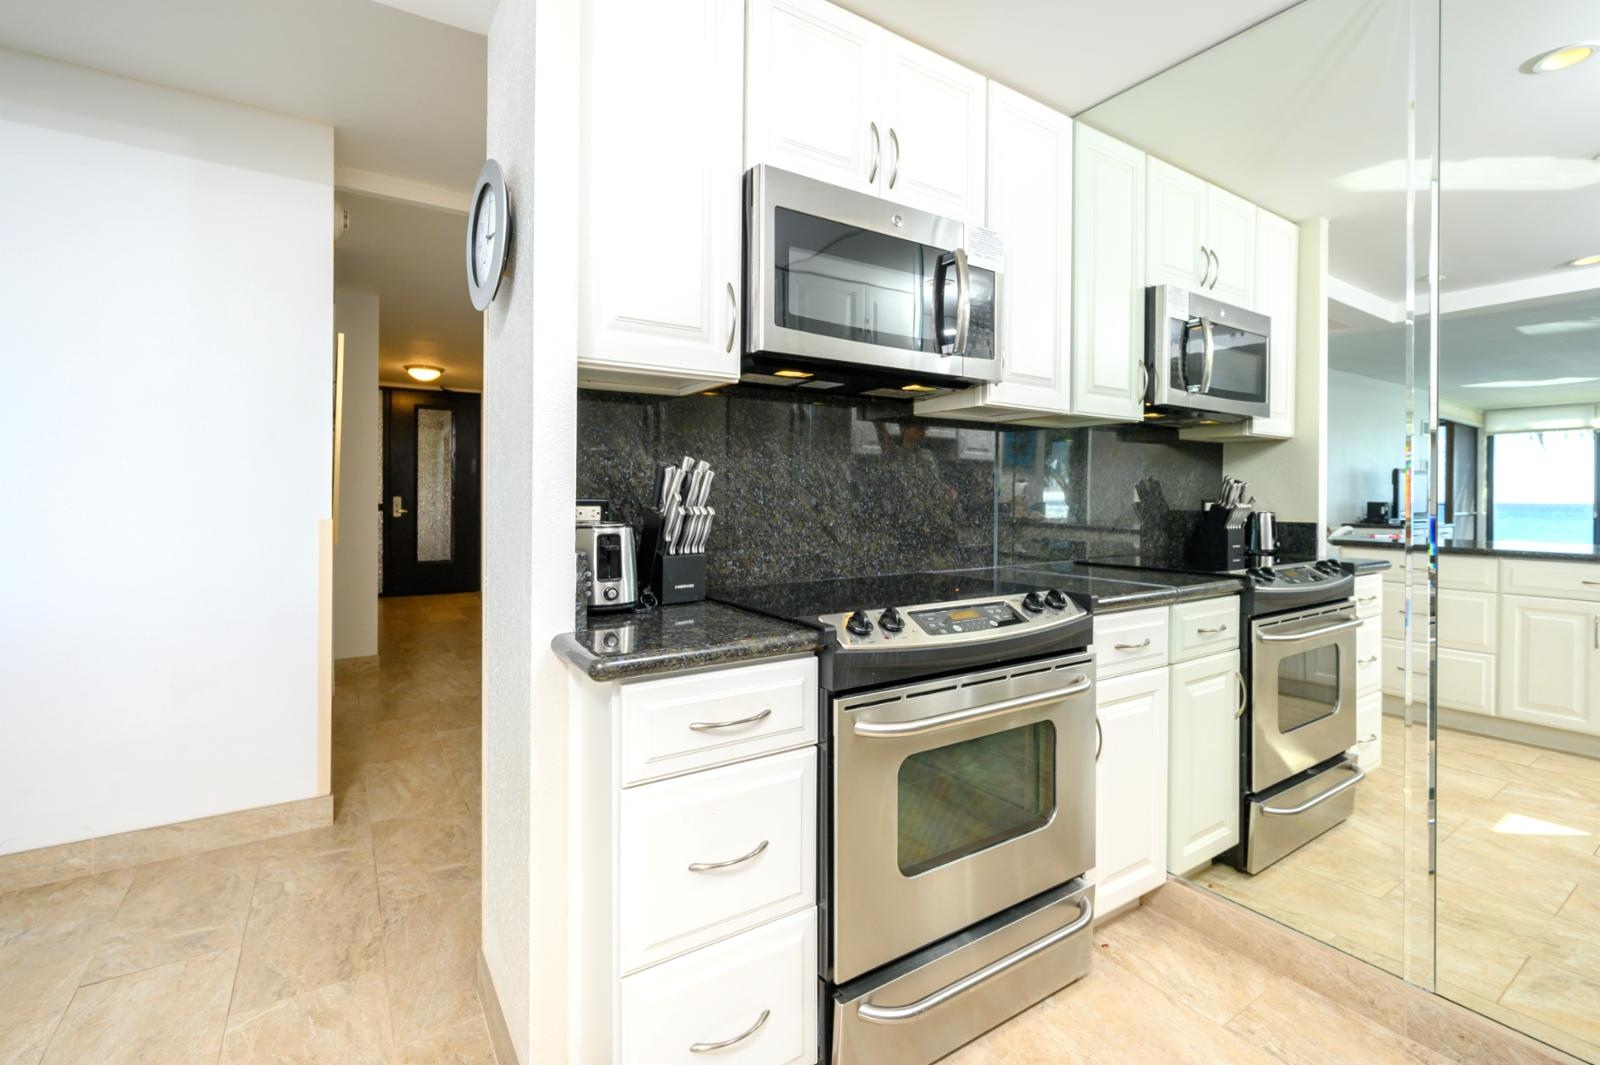 Upgraded stainless appliances throughout